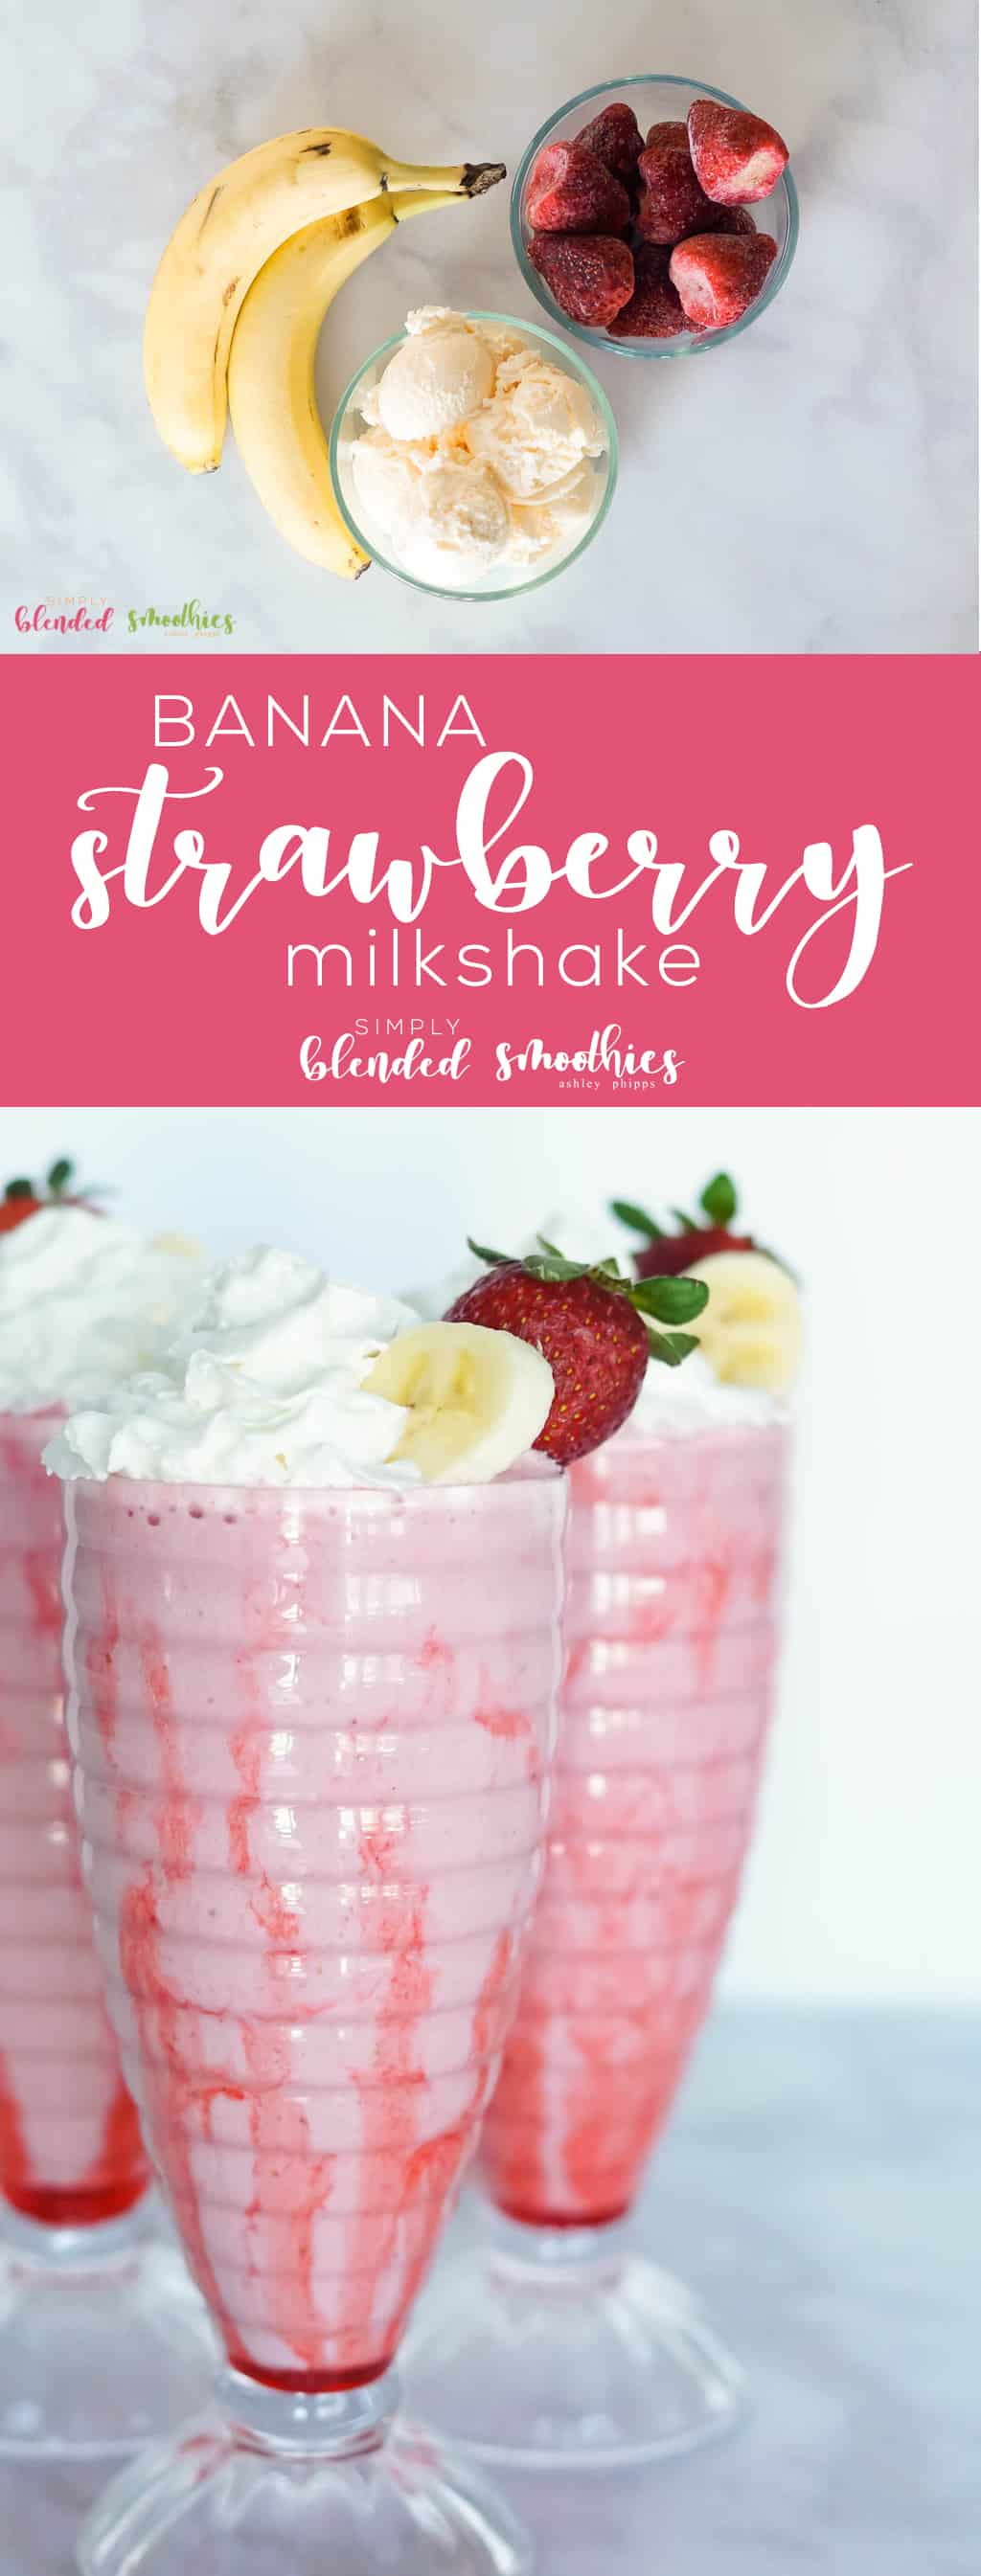 Strawberry Banana Milkshake - this delicious and simple to make milkshake is a delicious treat the whole family will enjoy